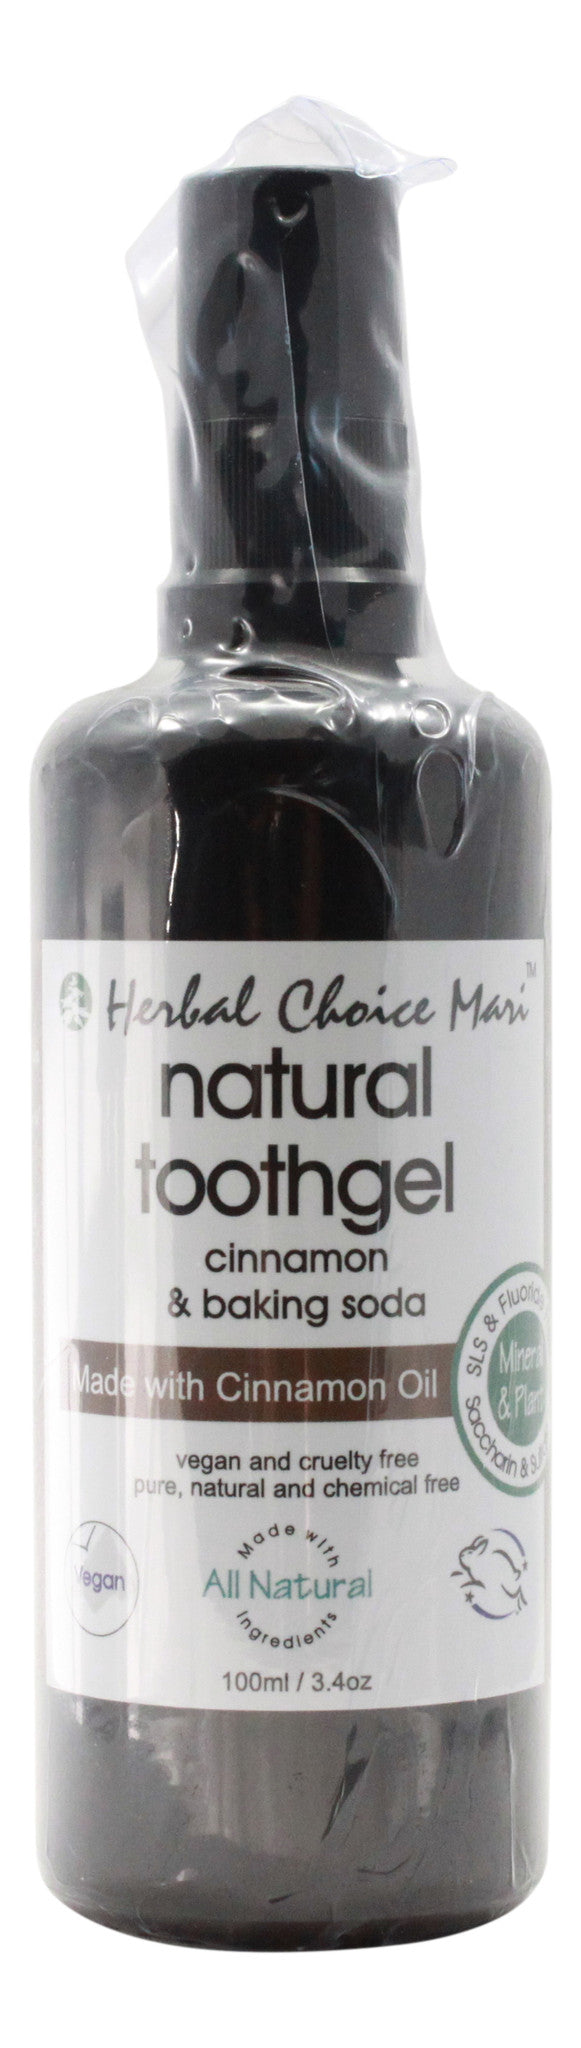 Natural Toothgel - Cinnamon & Baking Soda - 3.4 oz Bottle - Front